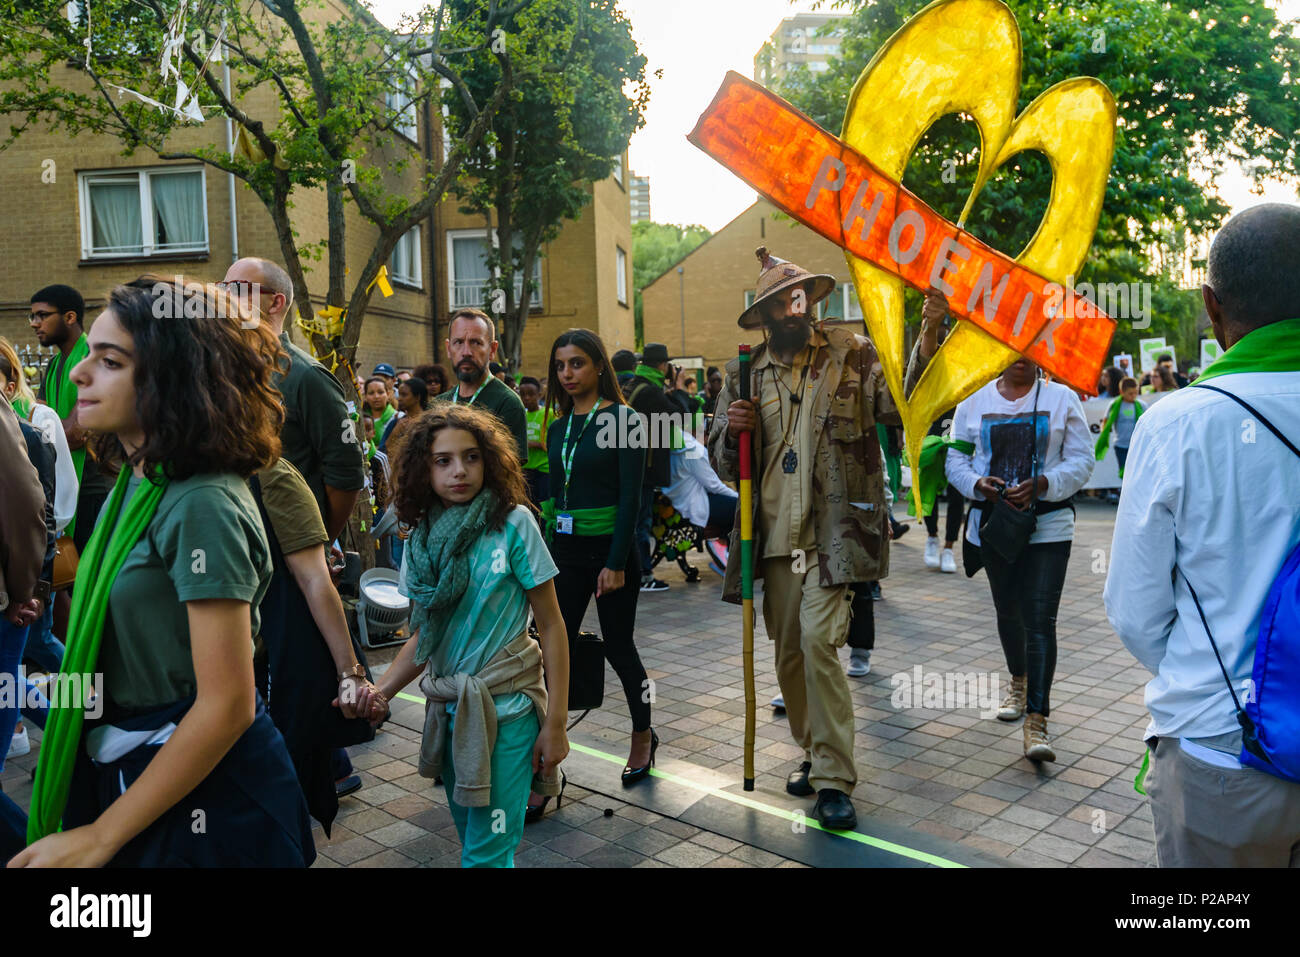 London, UK. 14th June 2018. Notting Hill community organiser Niles Hailstones carries a yellow heart with the message 'Phoenix' on the silent walk from close to Grenfell Tower remembering the victims of the disaster on the first anniversary of the disastrous fire which killed 72 and left survivors traumatised. Many of those made homeless by the fire are still in temporary accomodation a year later despite promises mde by Theresa May and Kensington & Chelsea council, who many fell have failed the local community both before and after the fire. They say had they been listened to and respected Gr - Stock Image